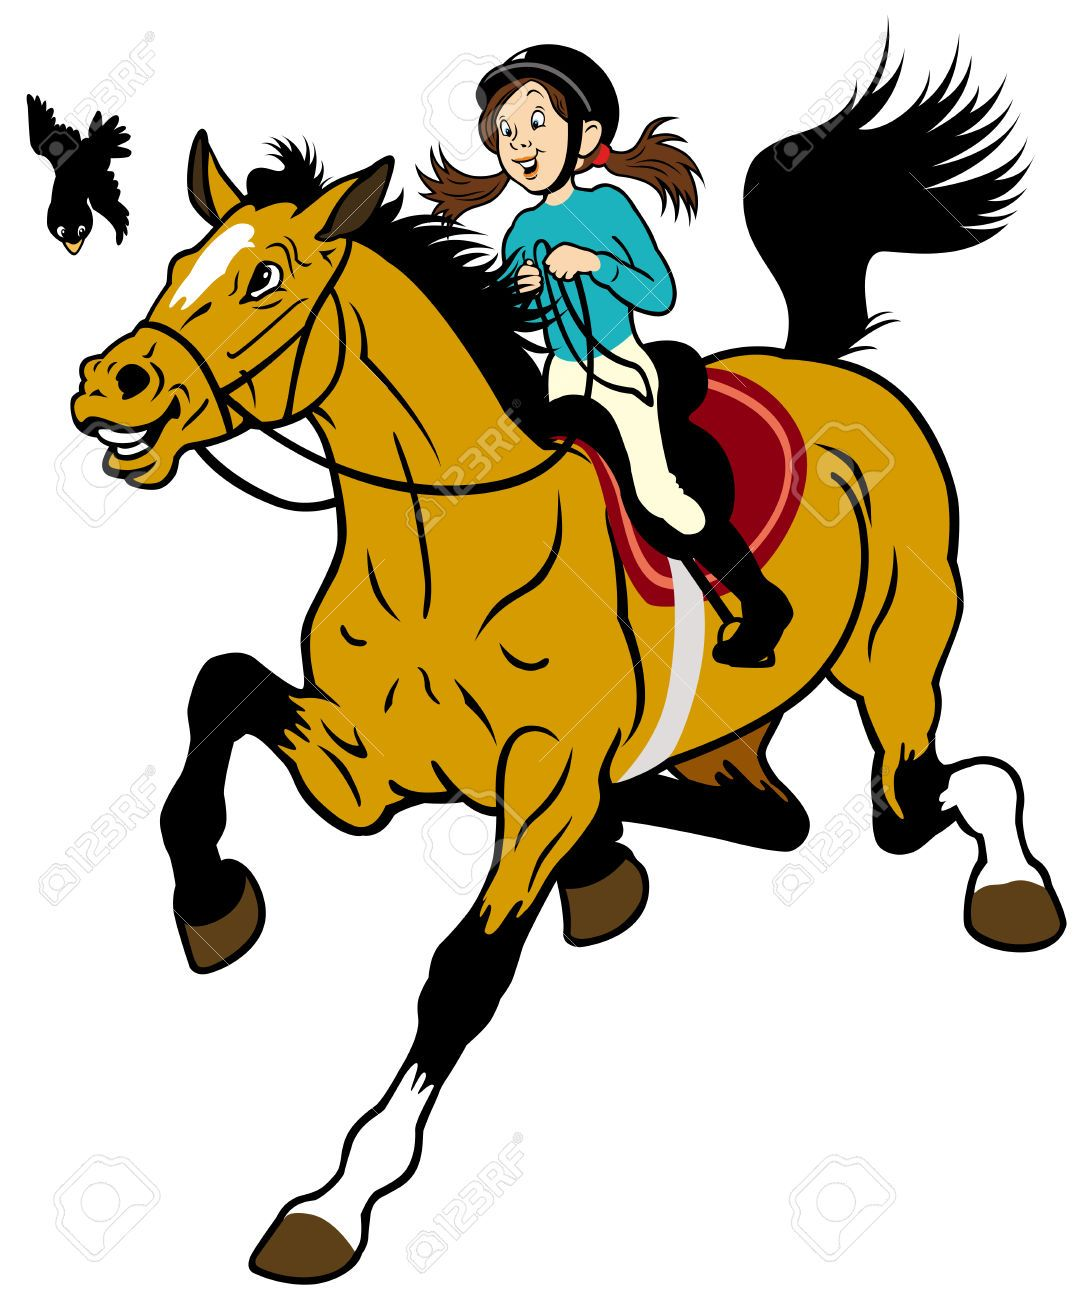 Pony Clipart Female Horse And Jockey At Getdrawings Girl Cartoon Horse Posters Children Illustration